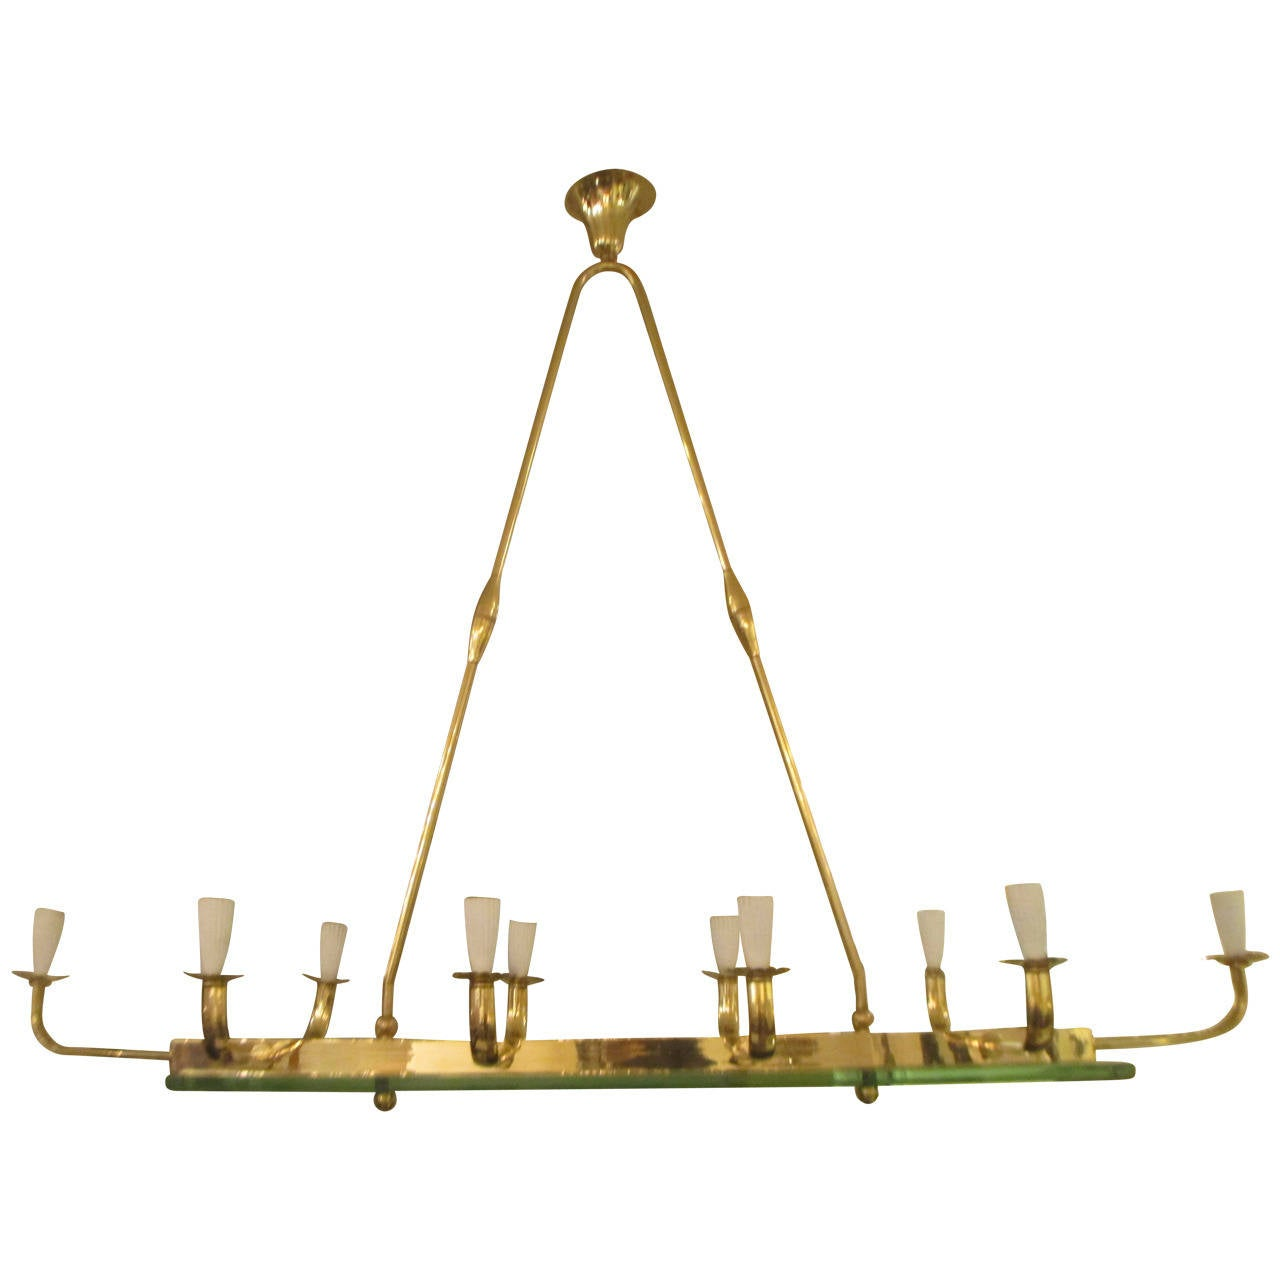 Exquisite Lighting Exquisite MidCentury Modern TenLight Brass And Glass Chandelier 1 Lighting